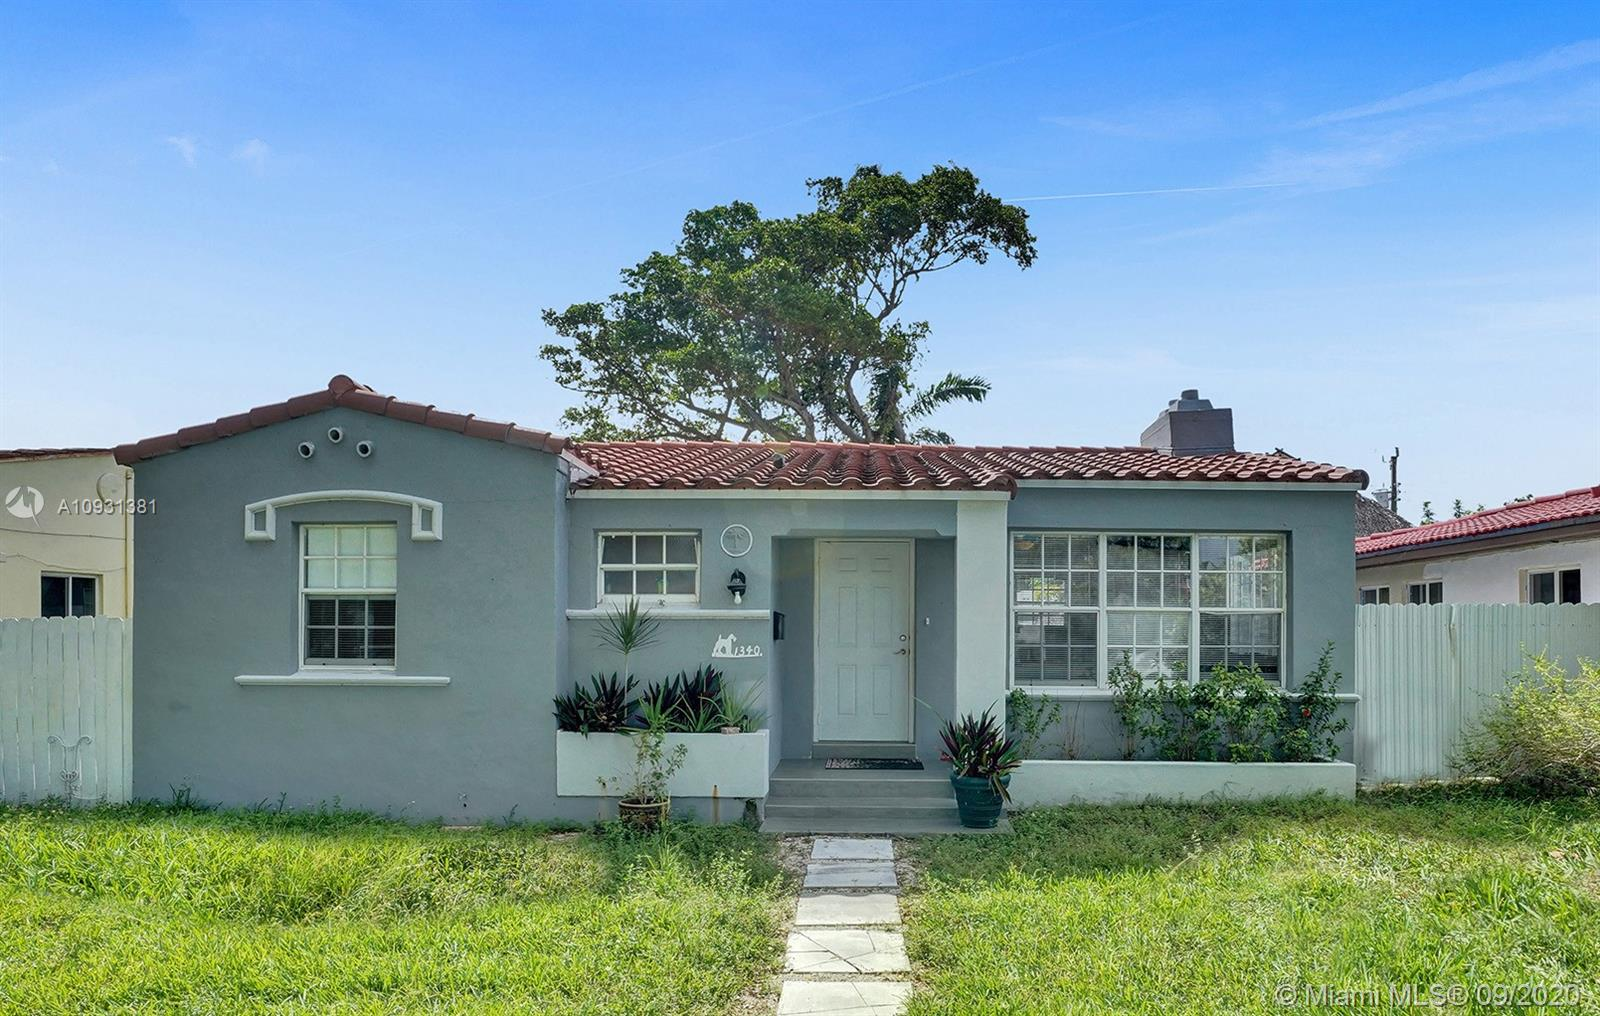 1340 Normandy Drive, Miami Beach, Florida 33141, 3 Bedrooms Bedrooms, ,2 BathroomsBathrooms,Residential,For Sale,1340 Normandy Drive,A10931381